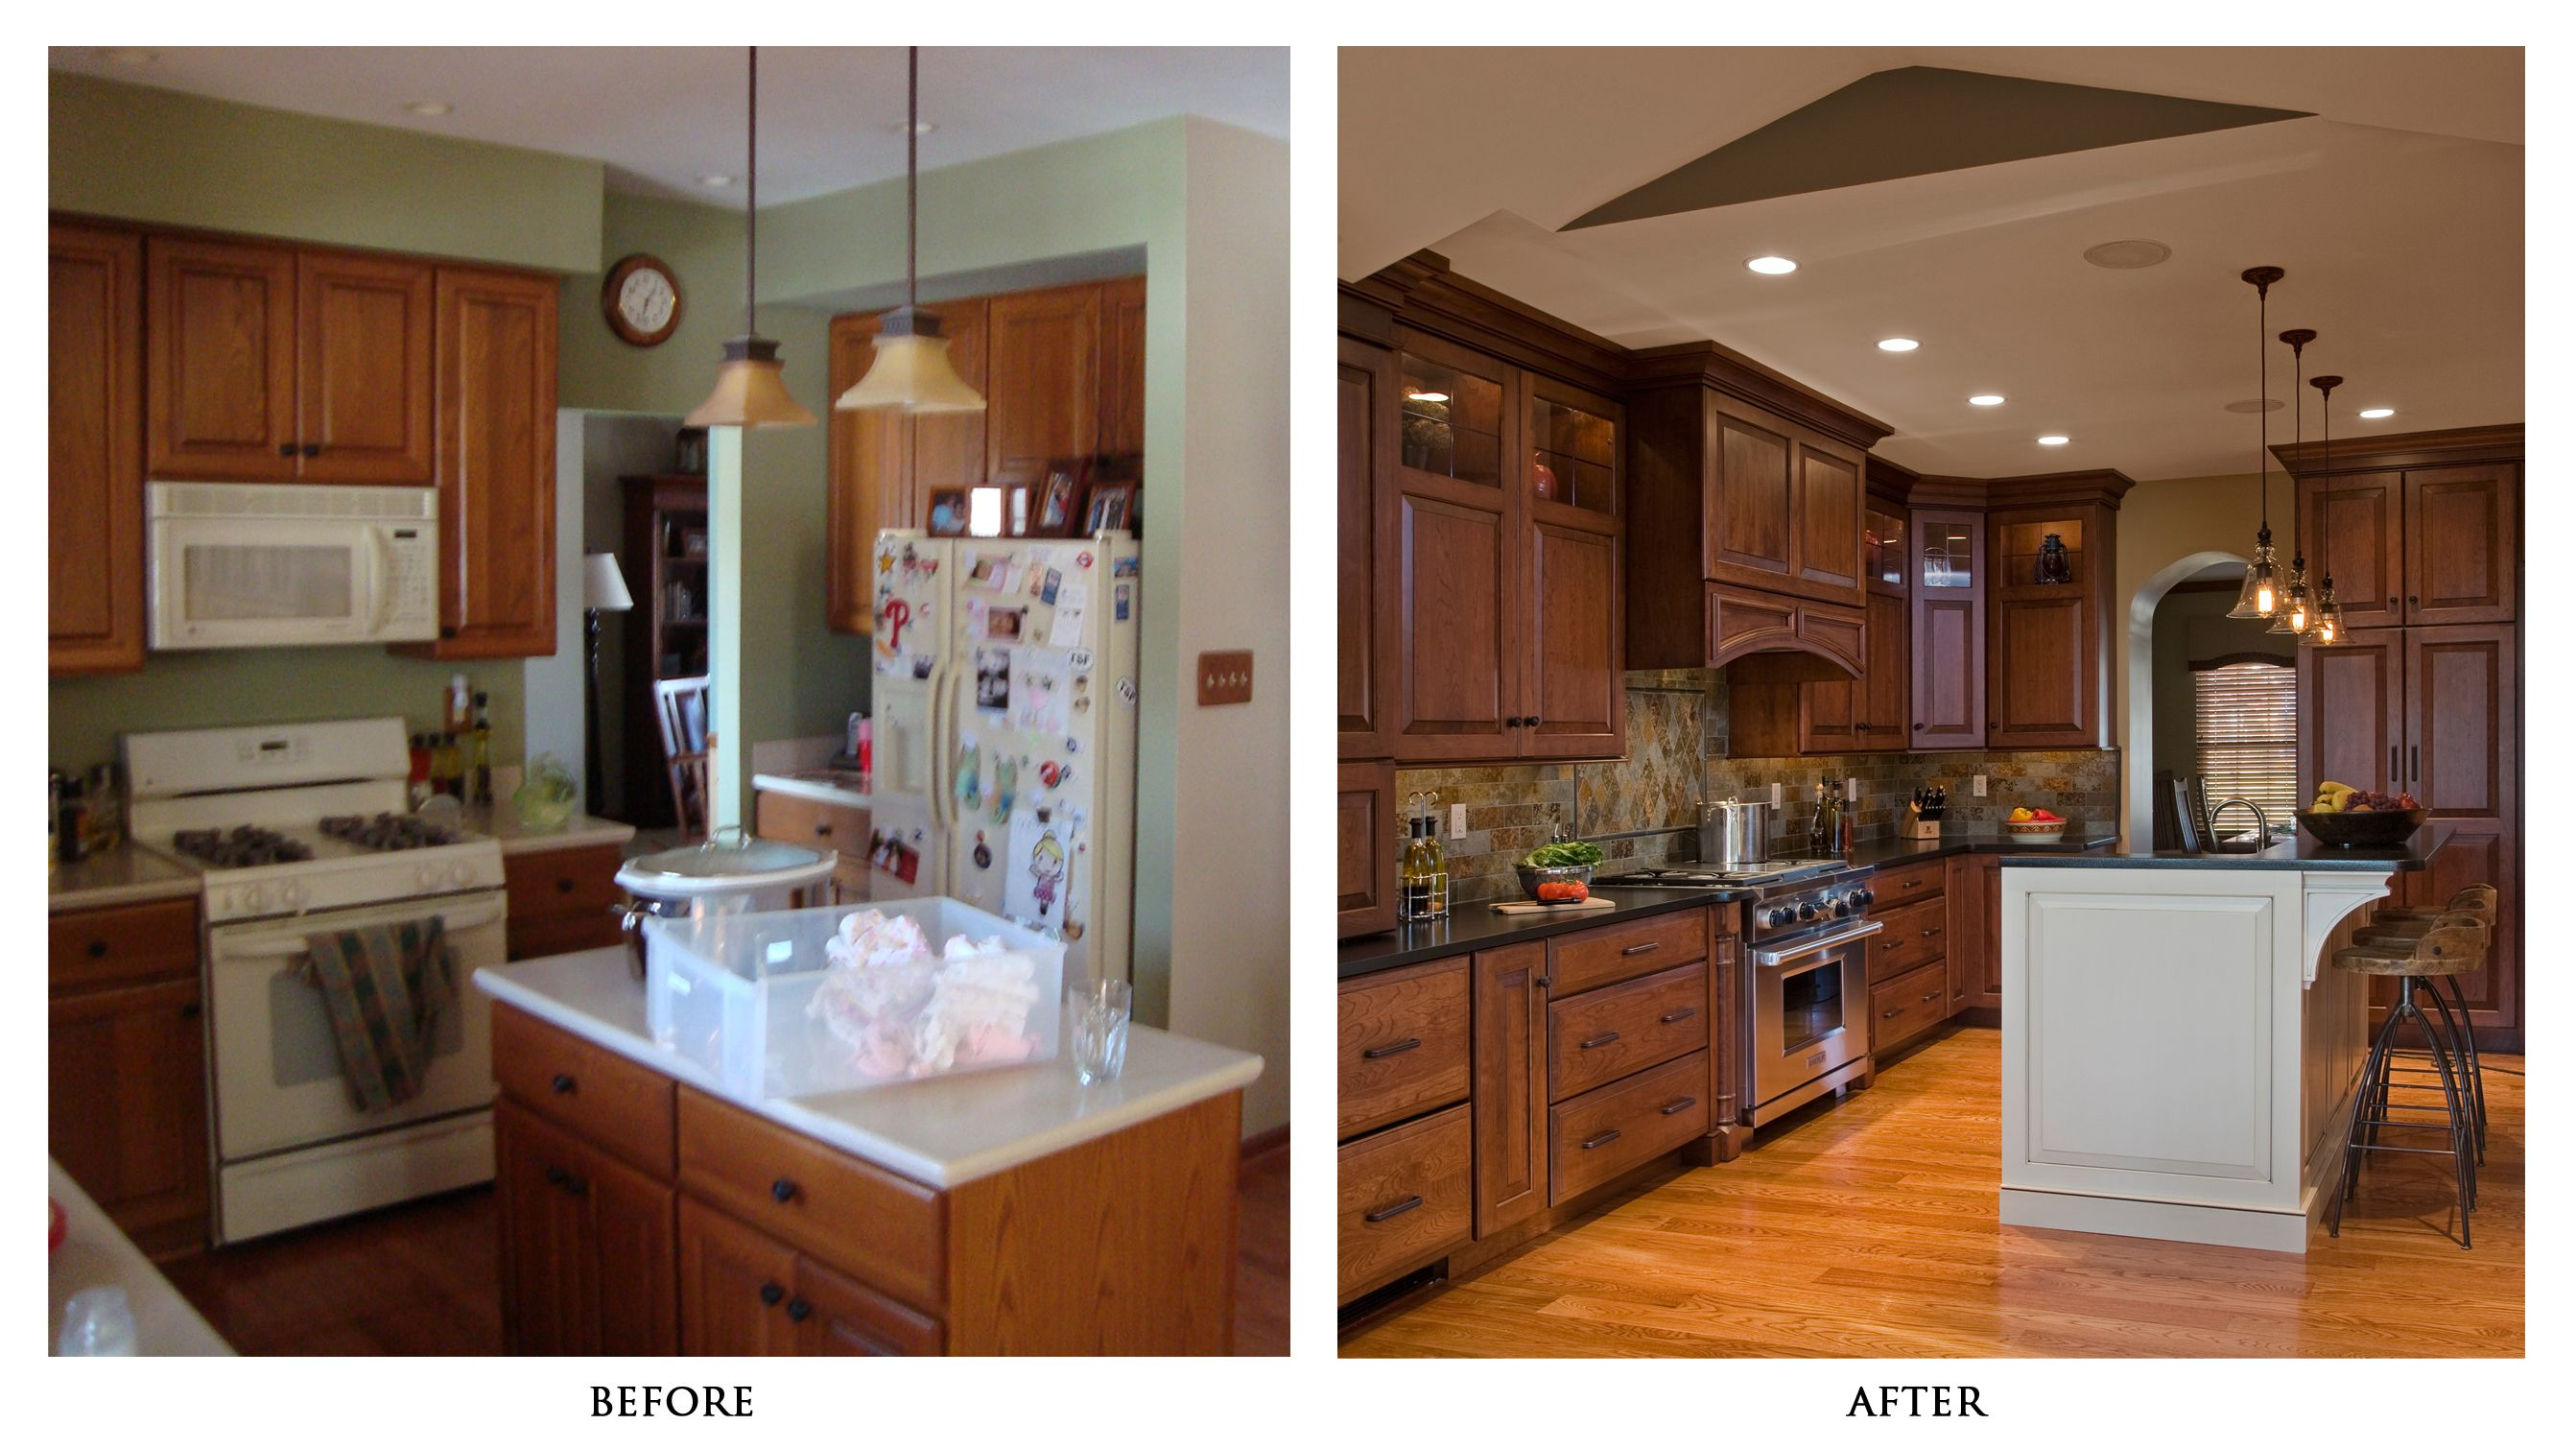 marvelous Before And After Pictures Of Remodeled Kitchens #2: kitchen remodel before and after - Google Search | 1960s remodel |  Pinterest | Home, Home Renovation and Photos